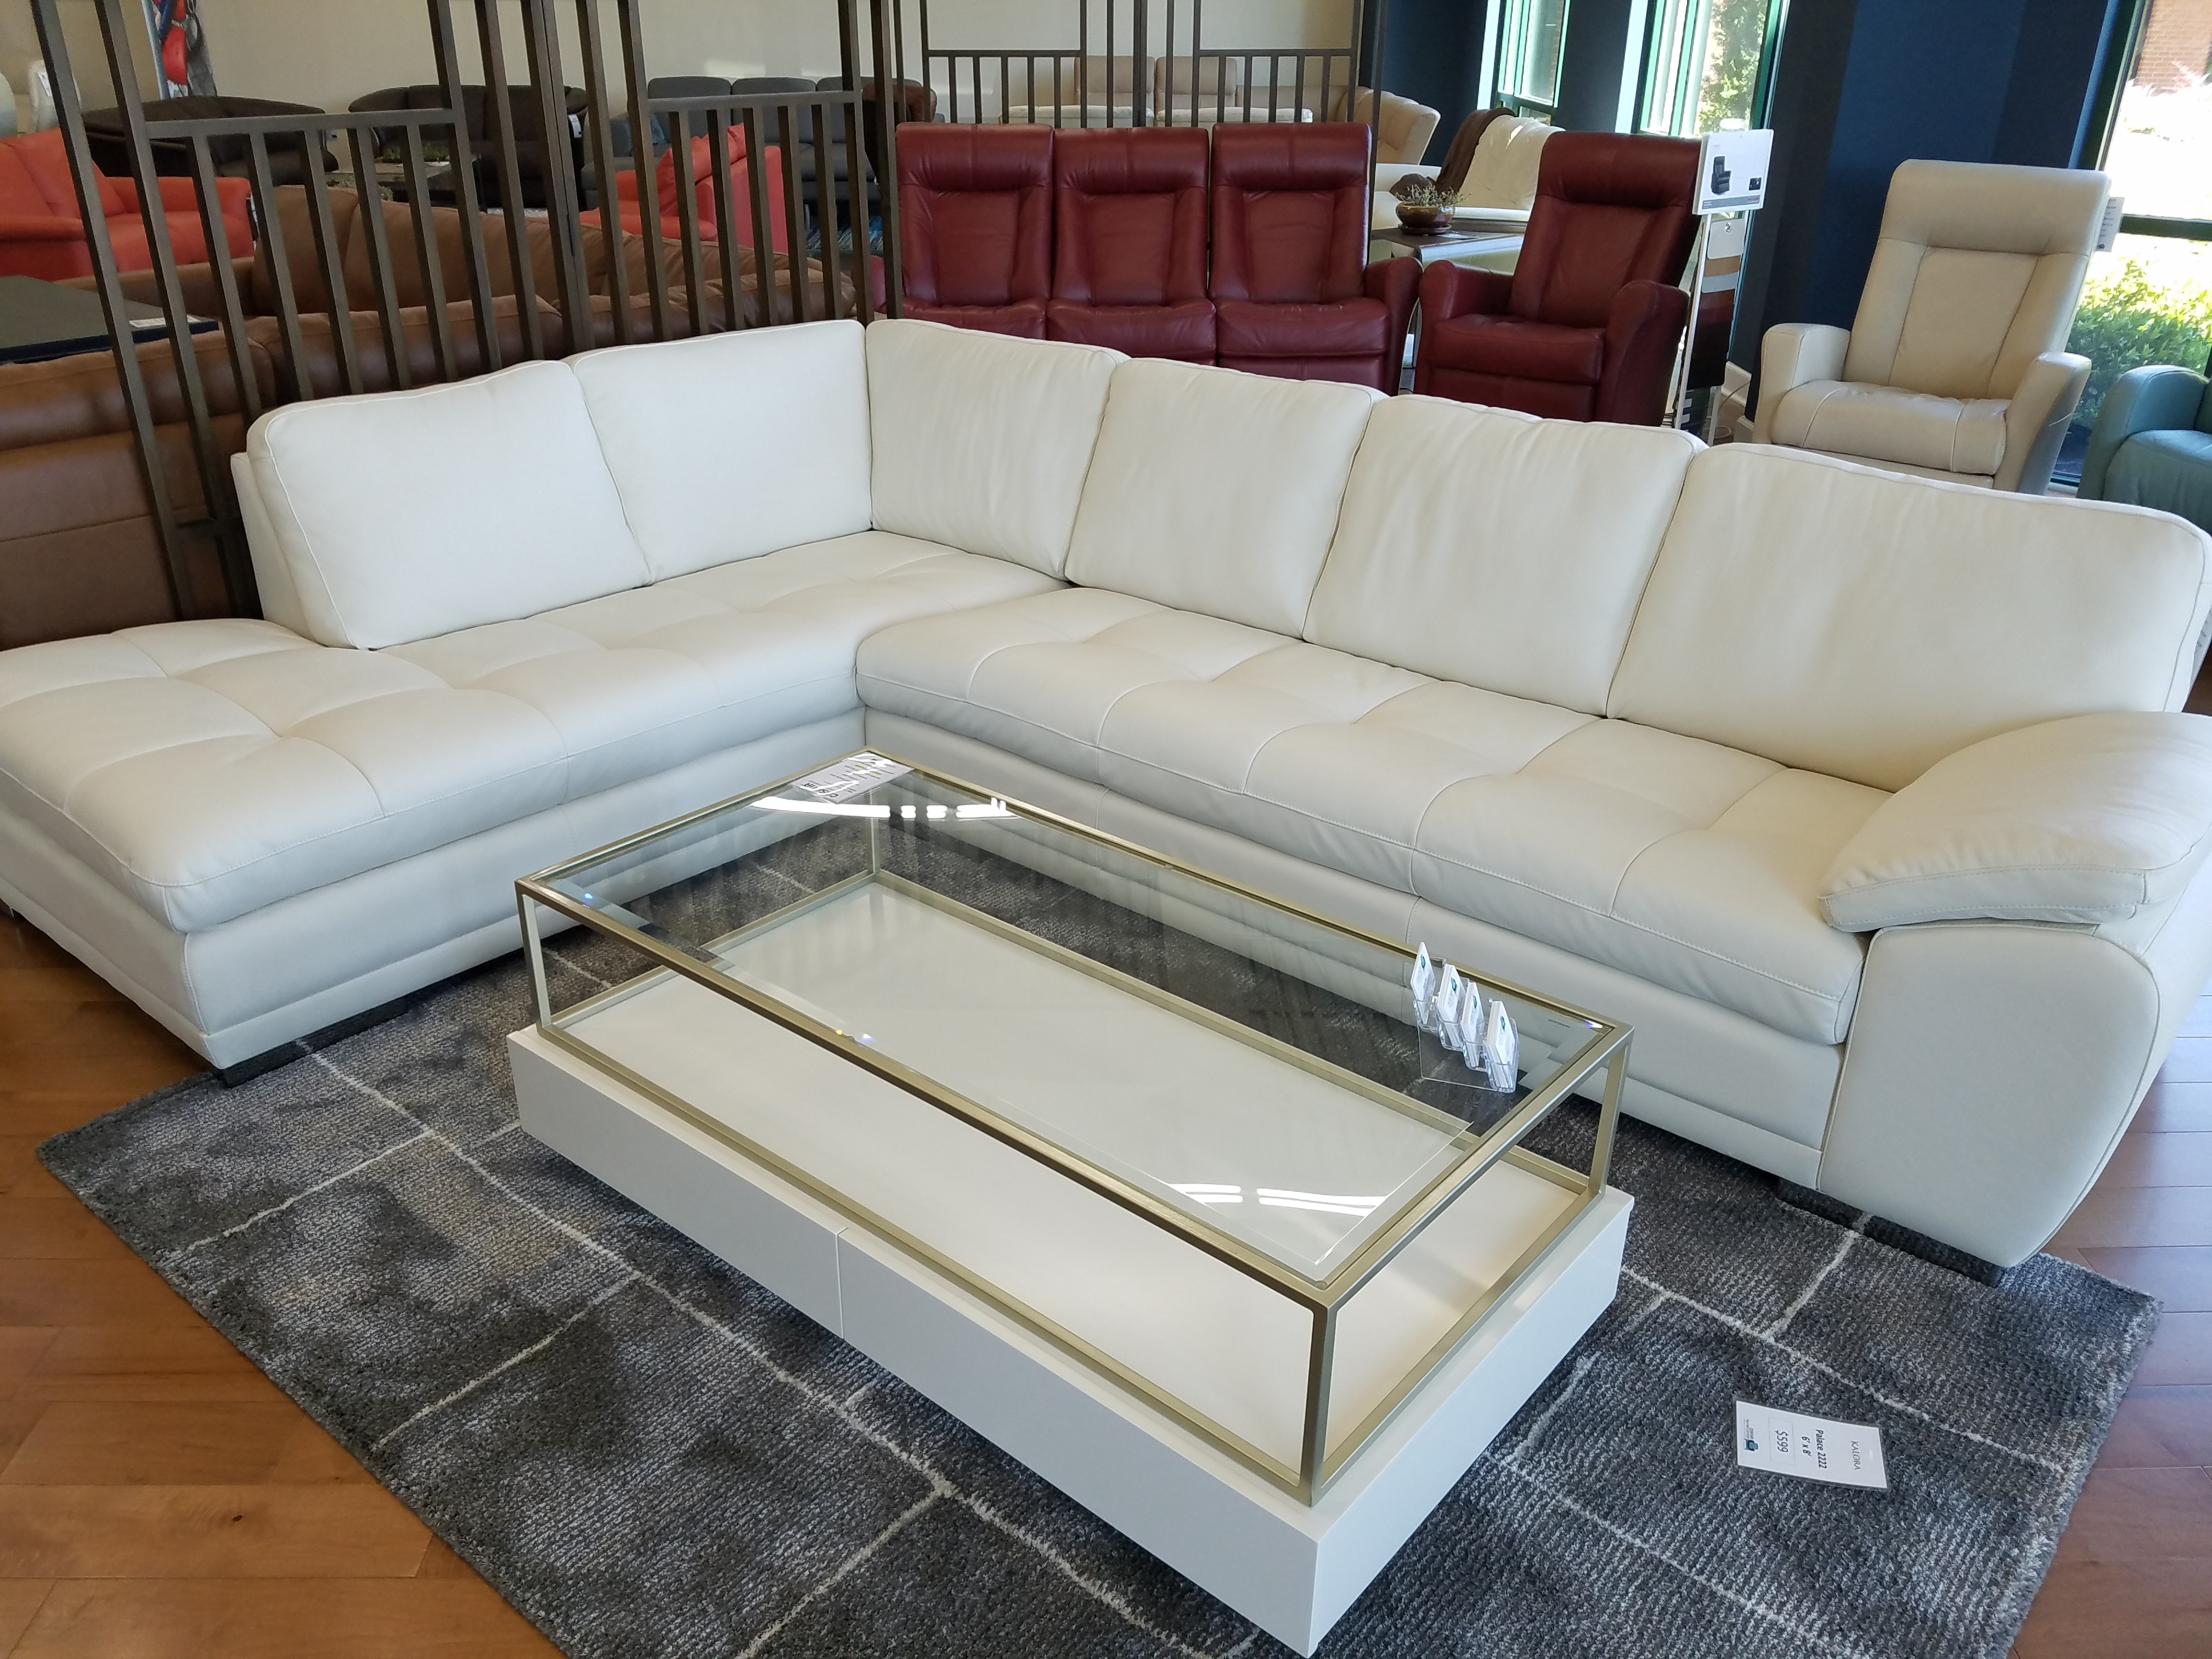 Palliser Miami Sectional Lhf Chaise Bumper And Rhf Sofa Leather regarding Miami Sectional Sofas (Image 8 of 10)